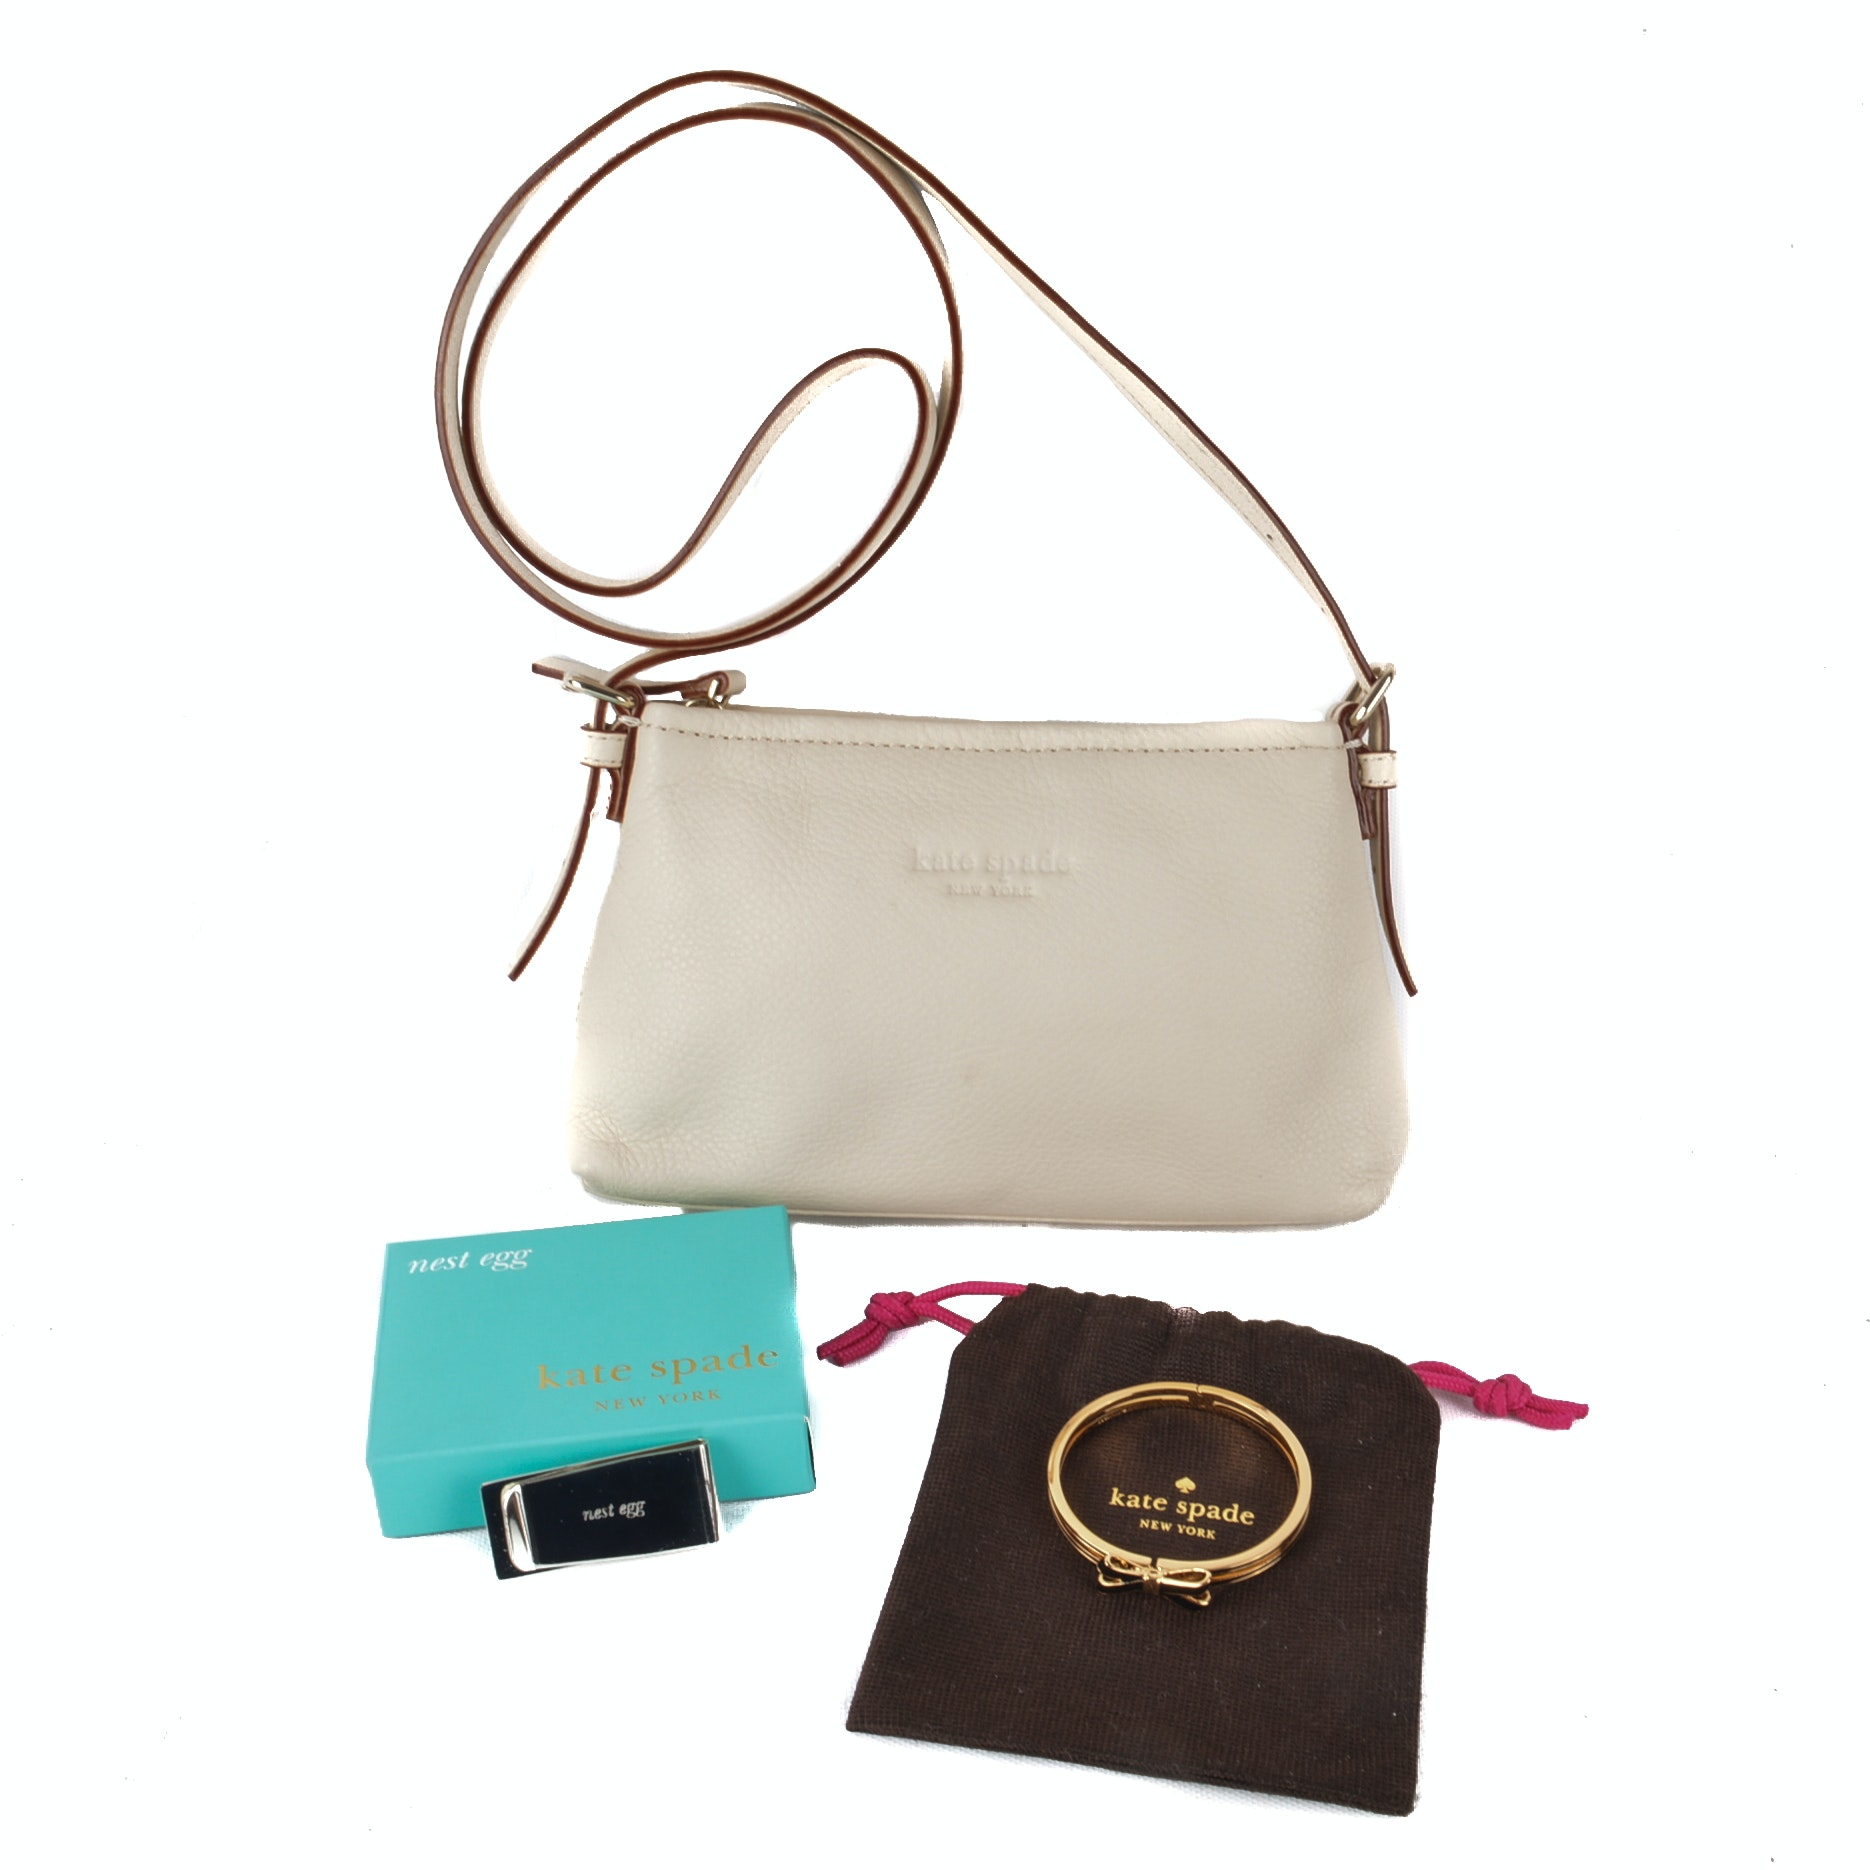 Kate Spade Cream Leather Crossbody Bag and Accessories